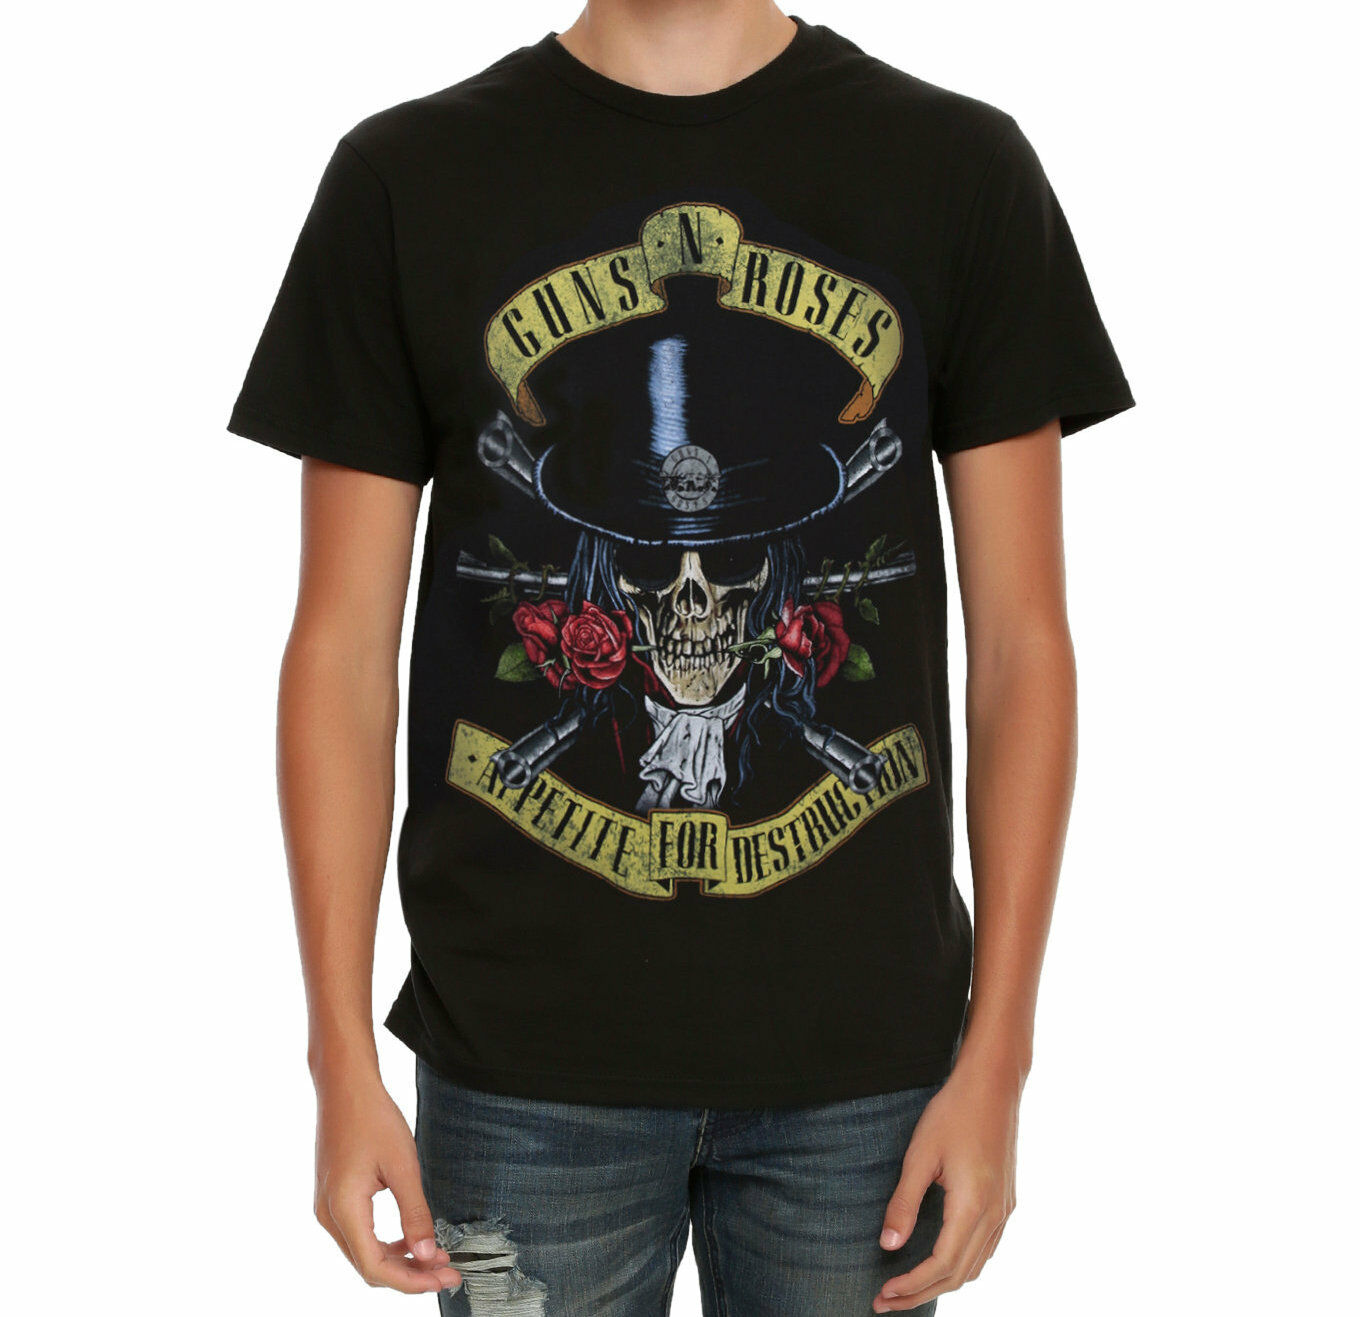 df3daca7e Guns N' Roses APPETITE FOR DESTRUCTION SKULL TOP HAT T Shirt NEW 100%  Authentic New Brand Clothing T Shirts 2018 Summer 100% Cotton Design And  Buy T ...